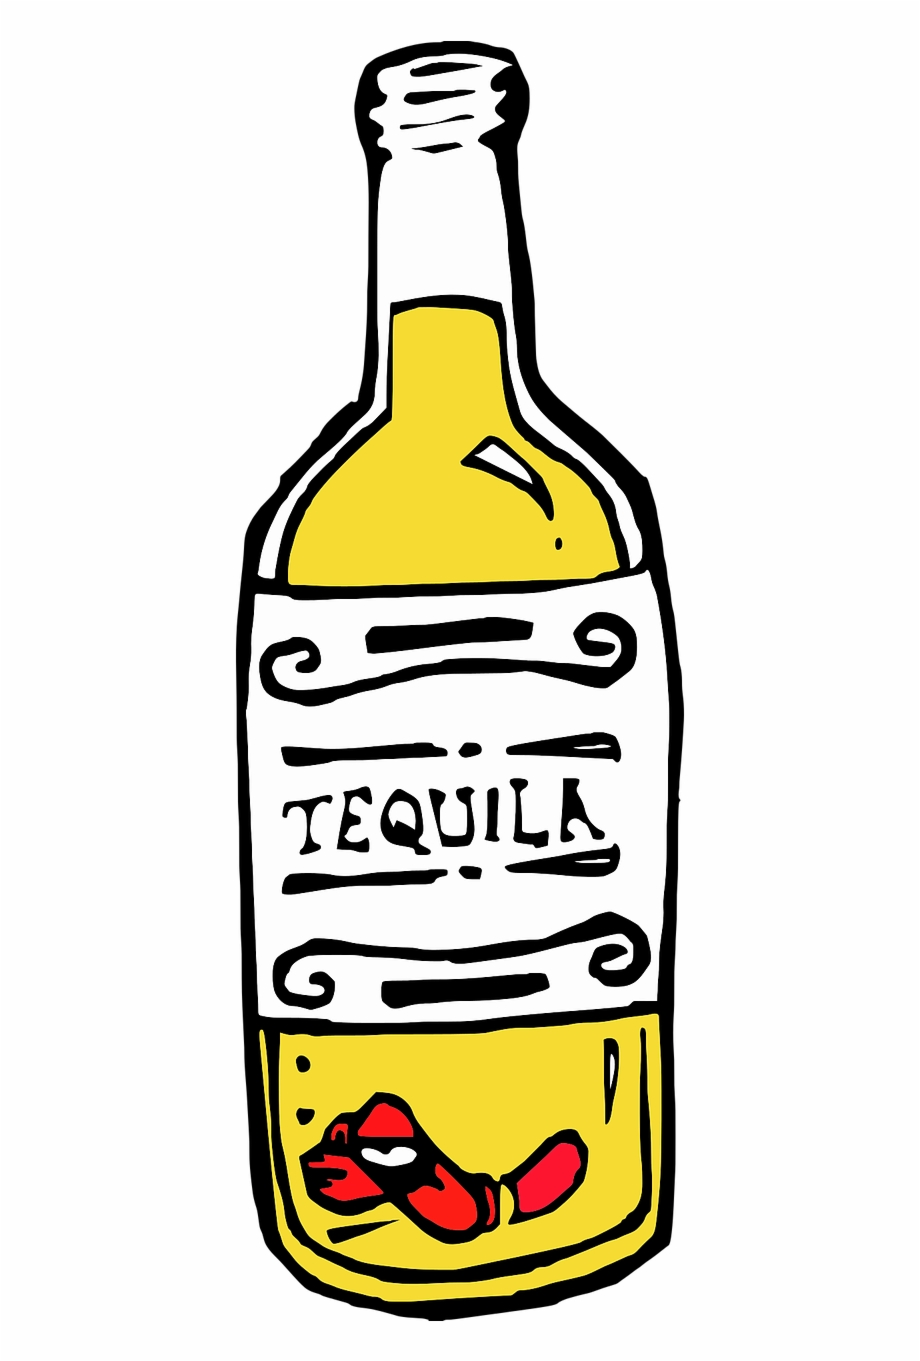 Tequila bottles clipart graphic transparent stock Tequila Drink Alcohol Transparent Png Image - Tequila ... graphic transparent stock